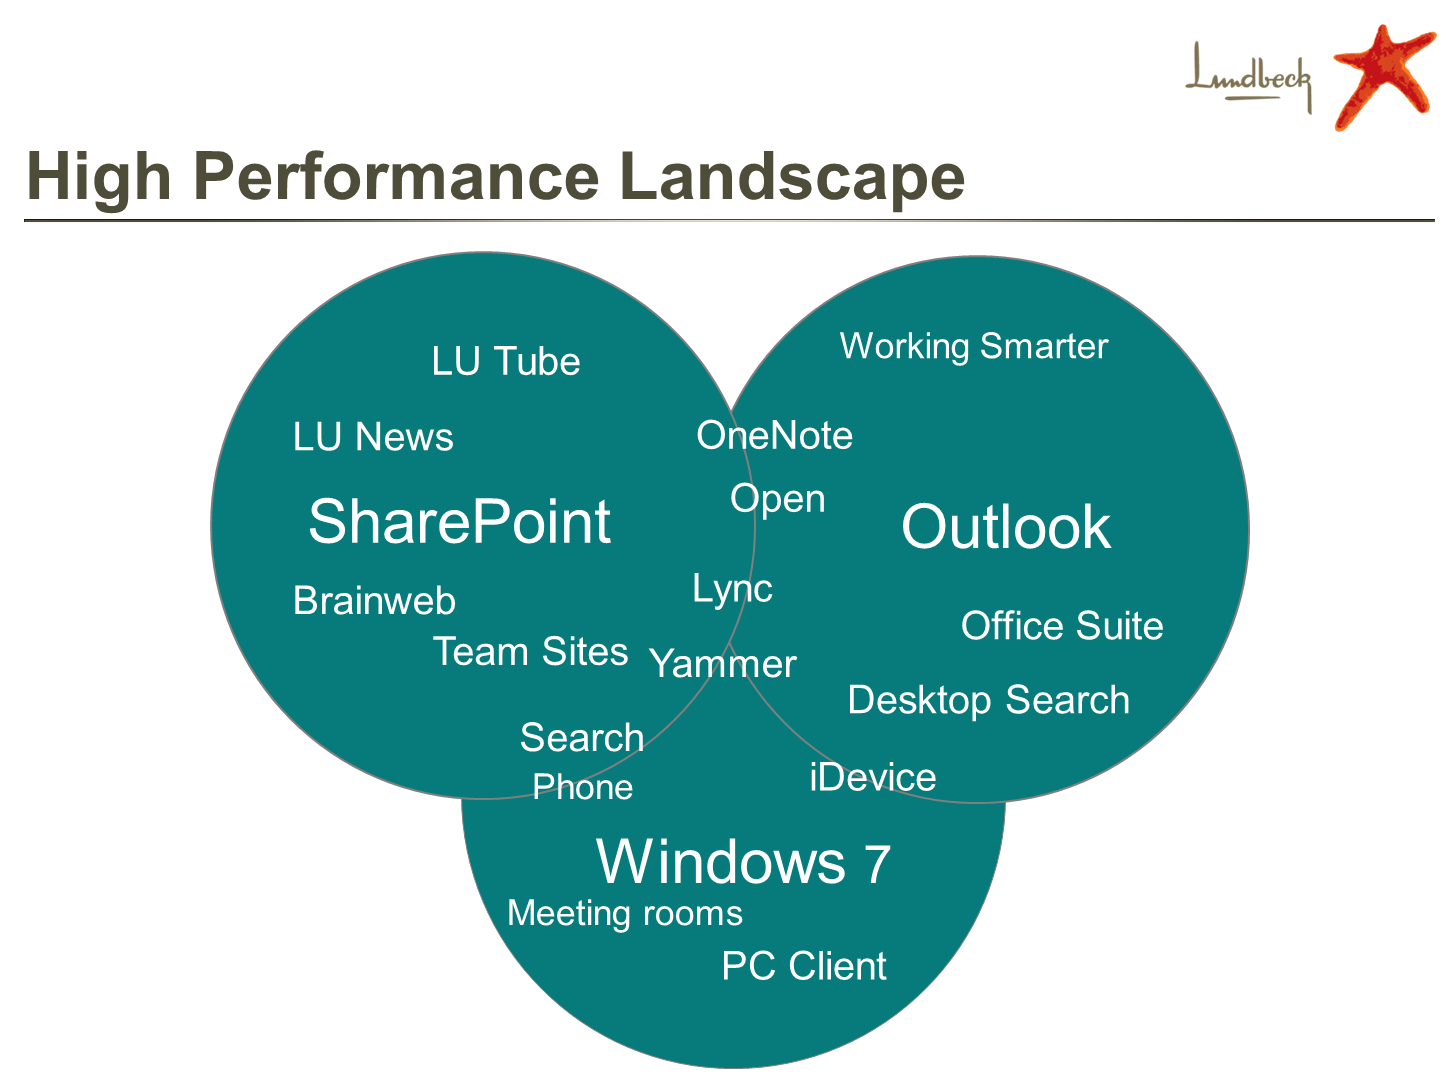 High performance landscape